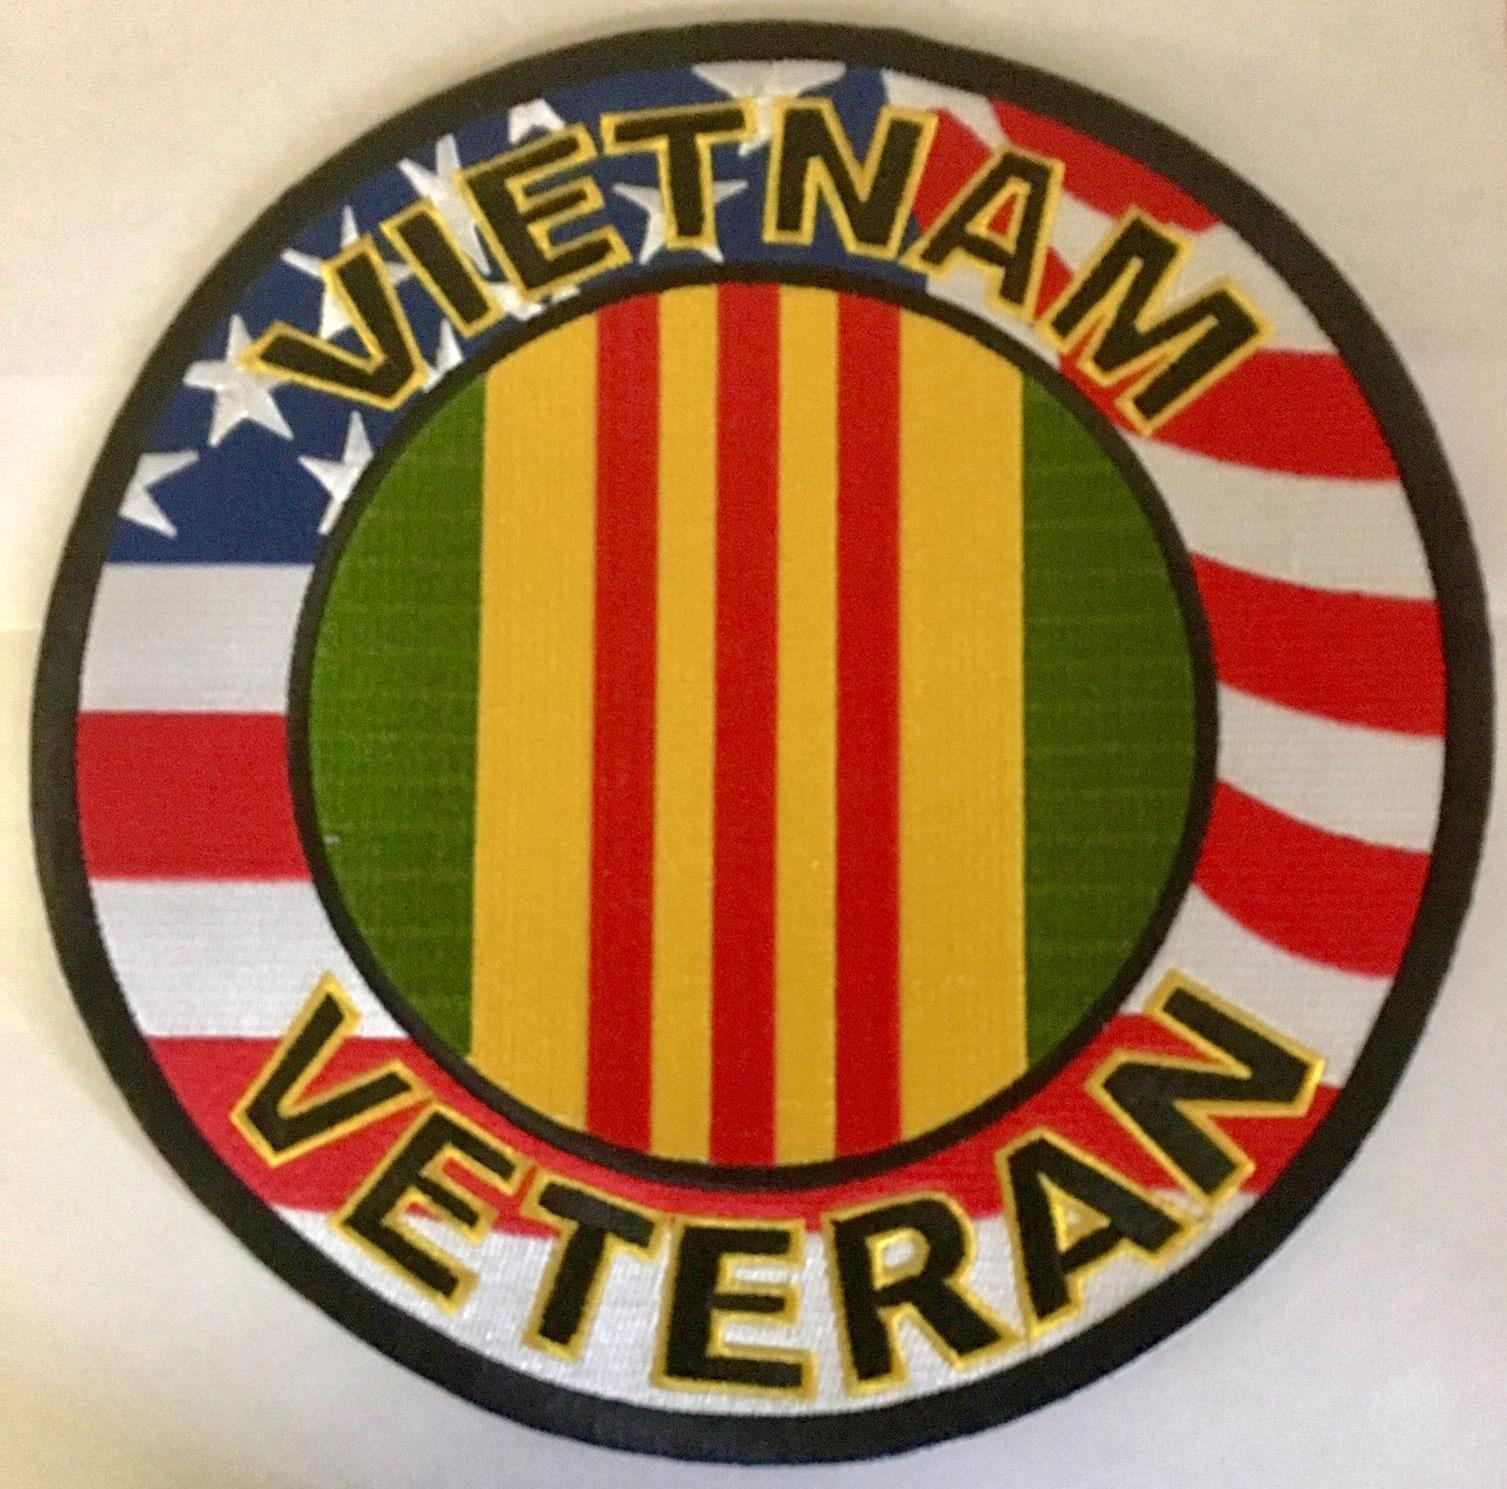 VIETNAM VETERAN BACK PATCH